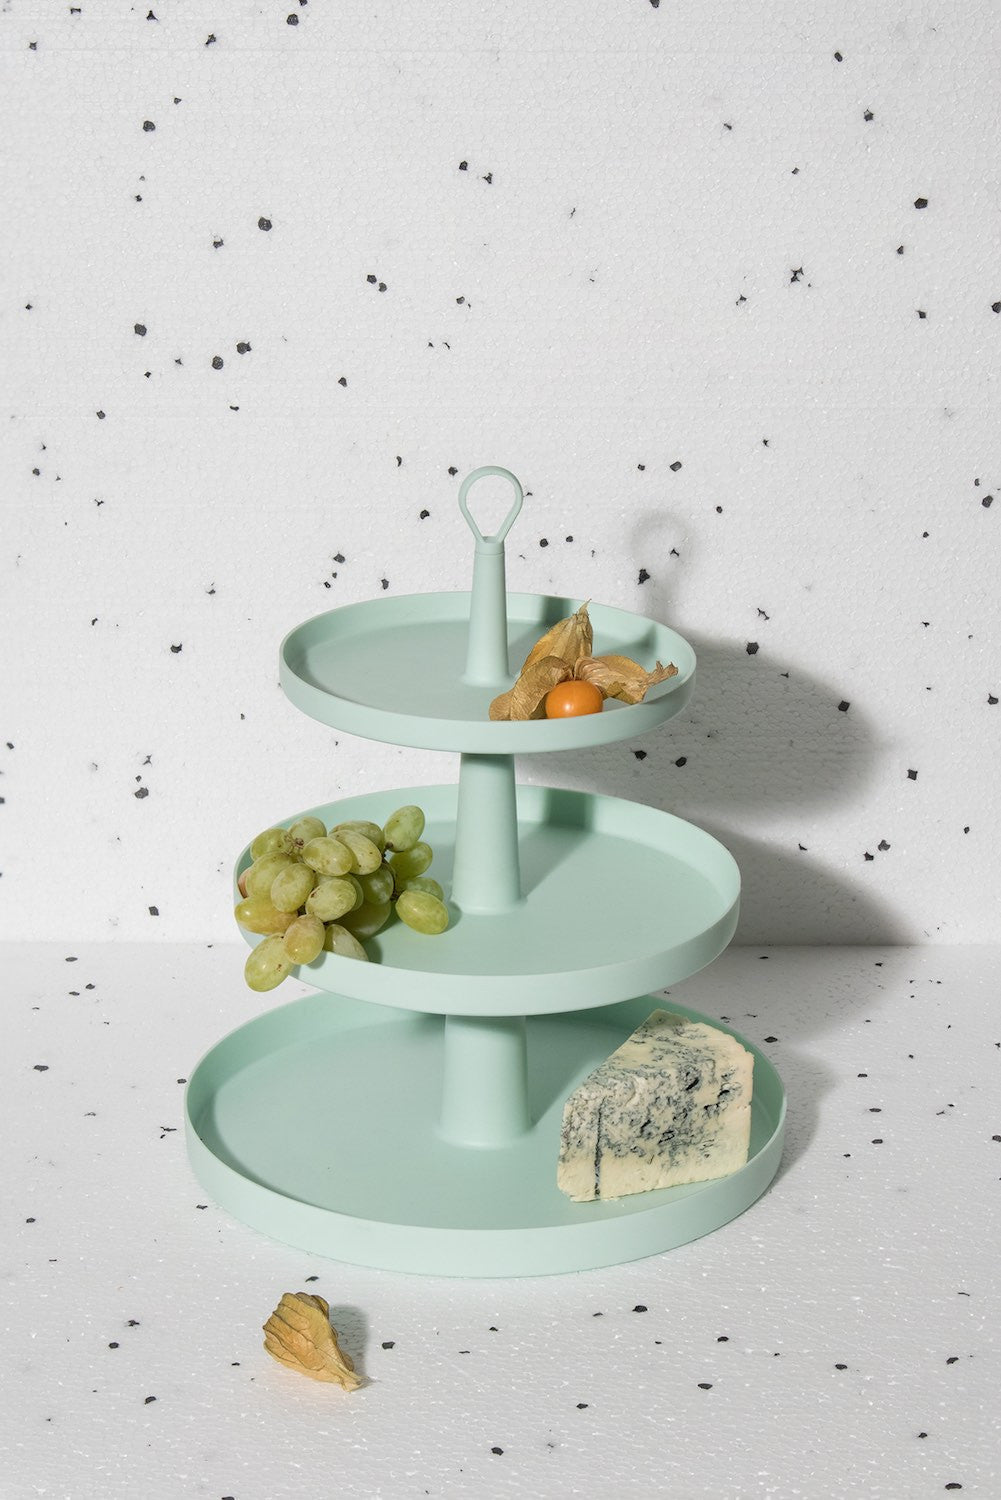 OMMO THREE LEVELS CAKE STAND - Eclectic Cool  - 1